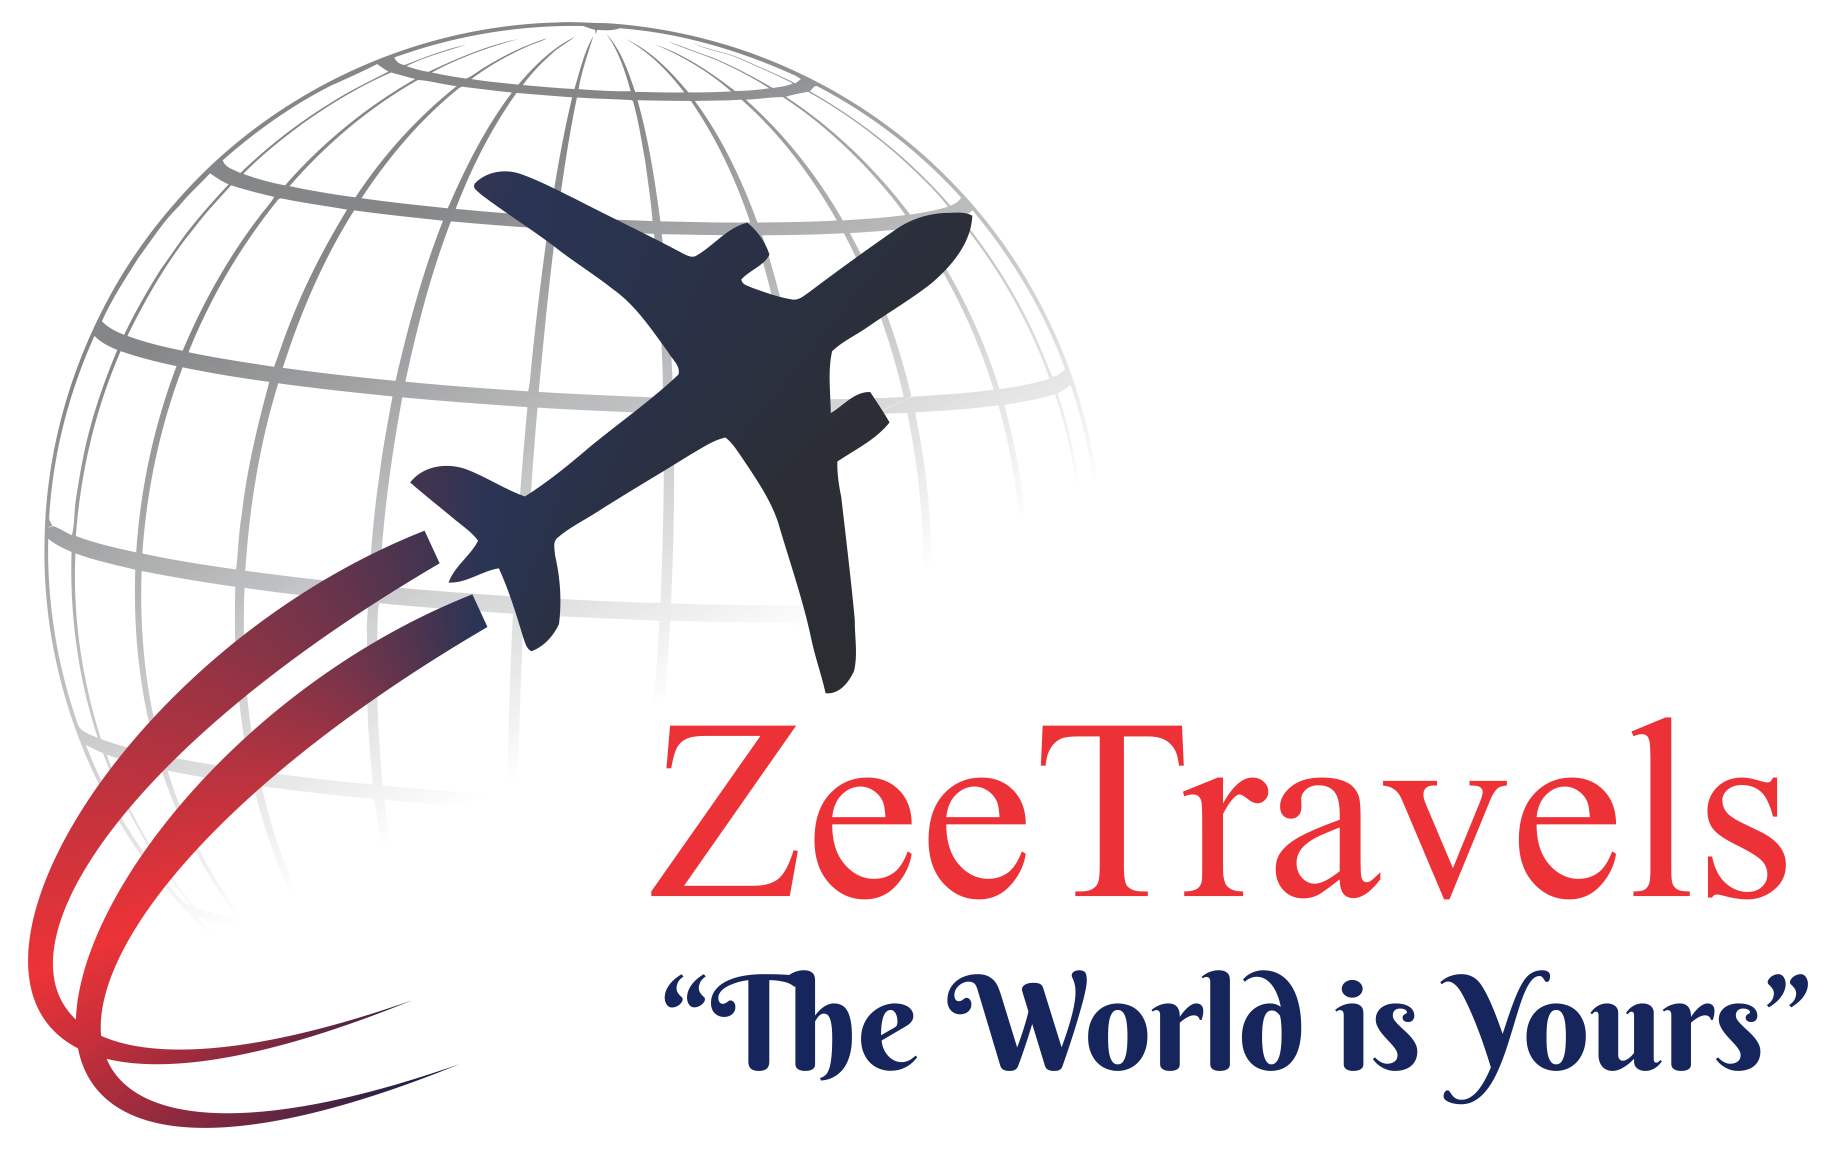 ZeeTravels LTD